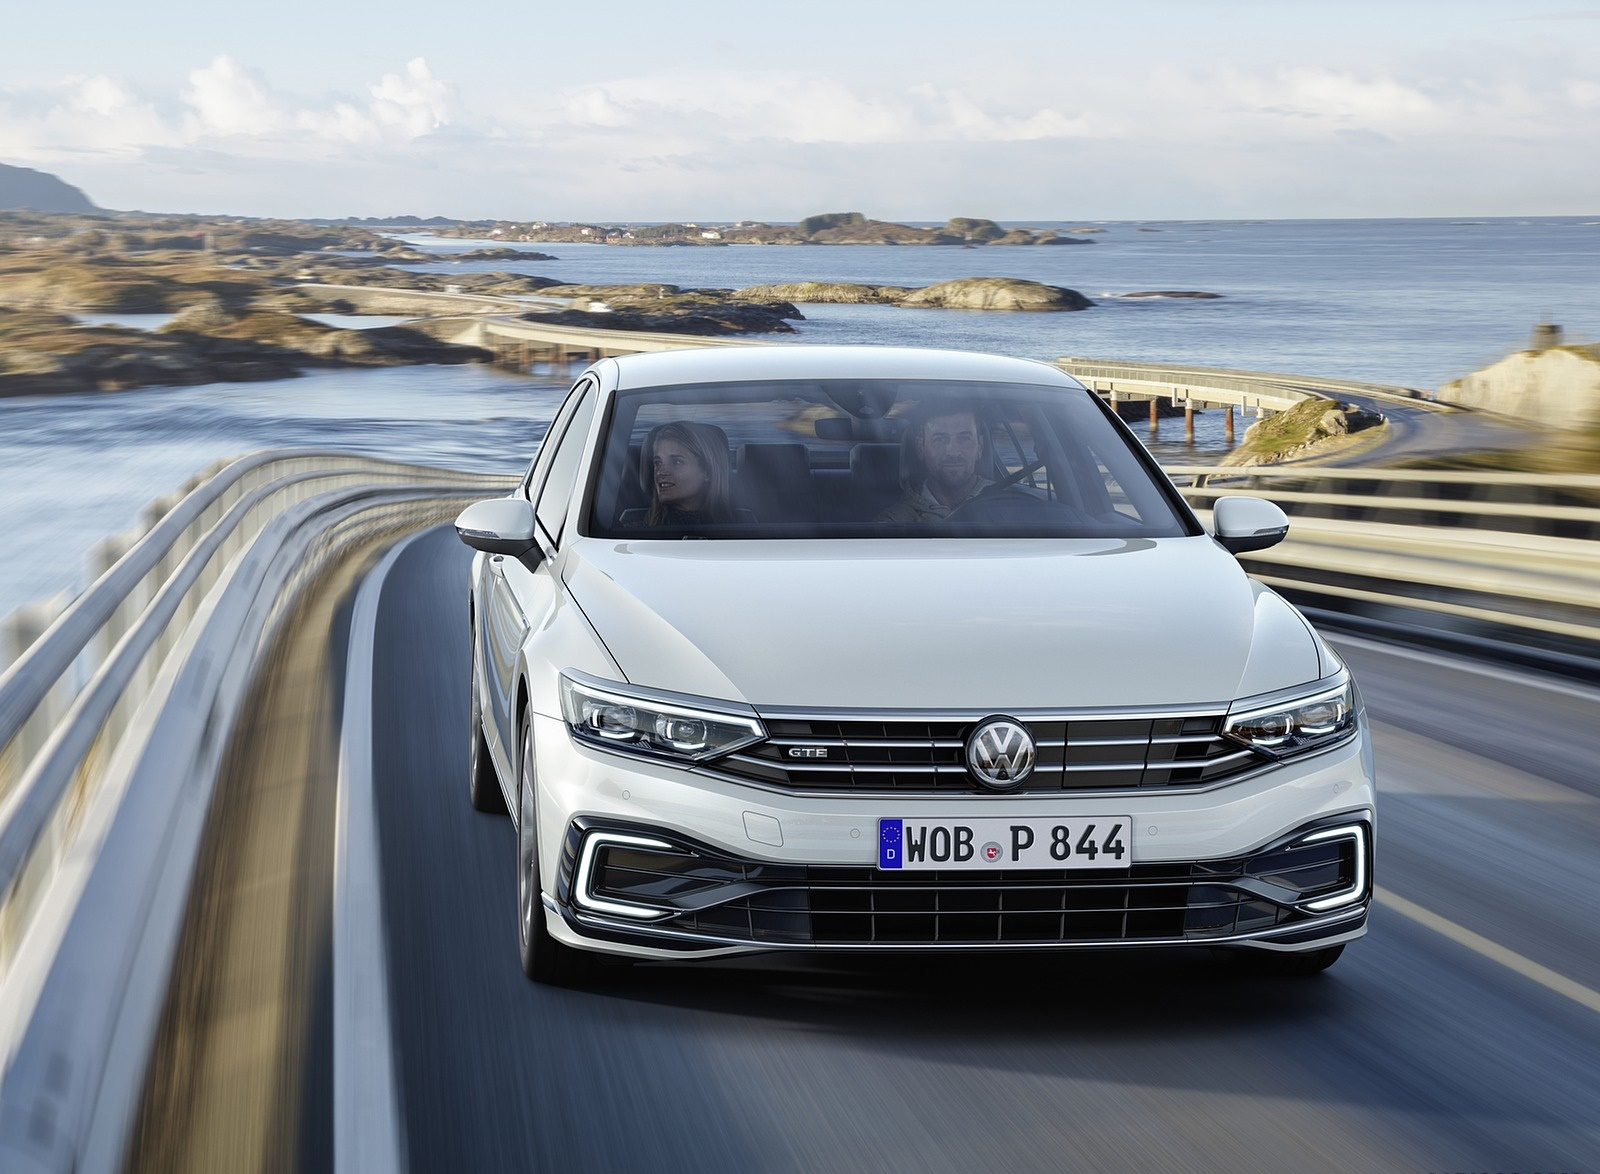 2020 Volkswagen Passat GTE Sedan (EU-Spec) Front Wallpapers (1)